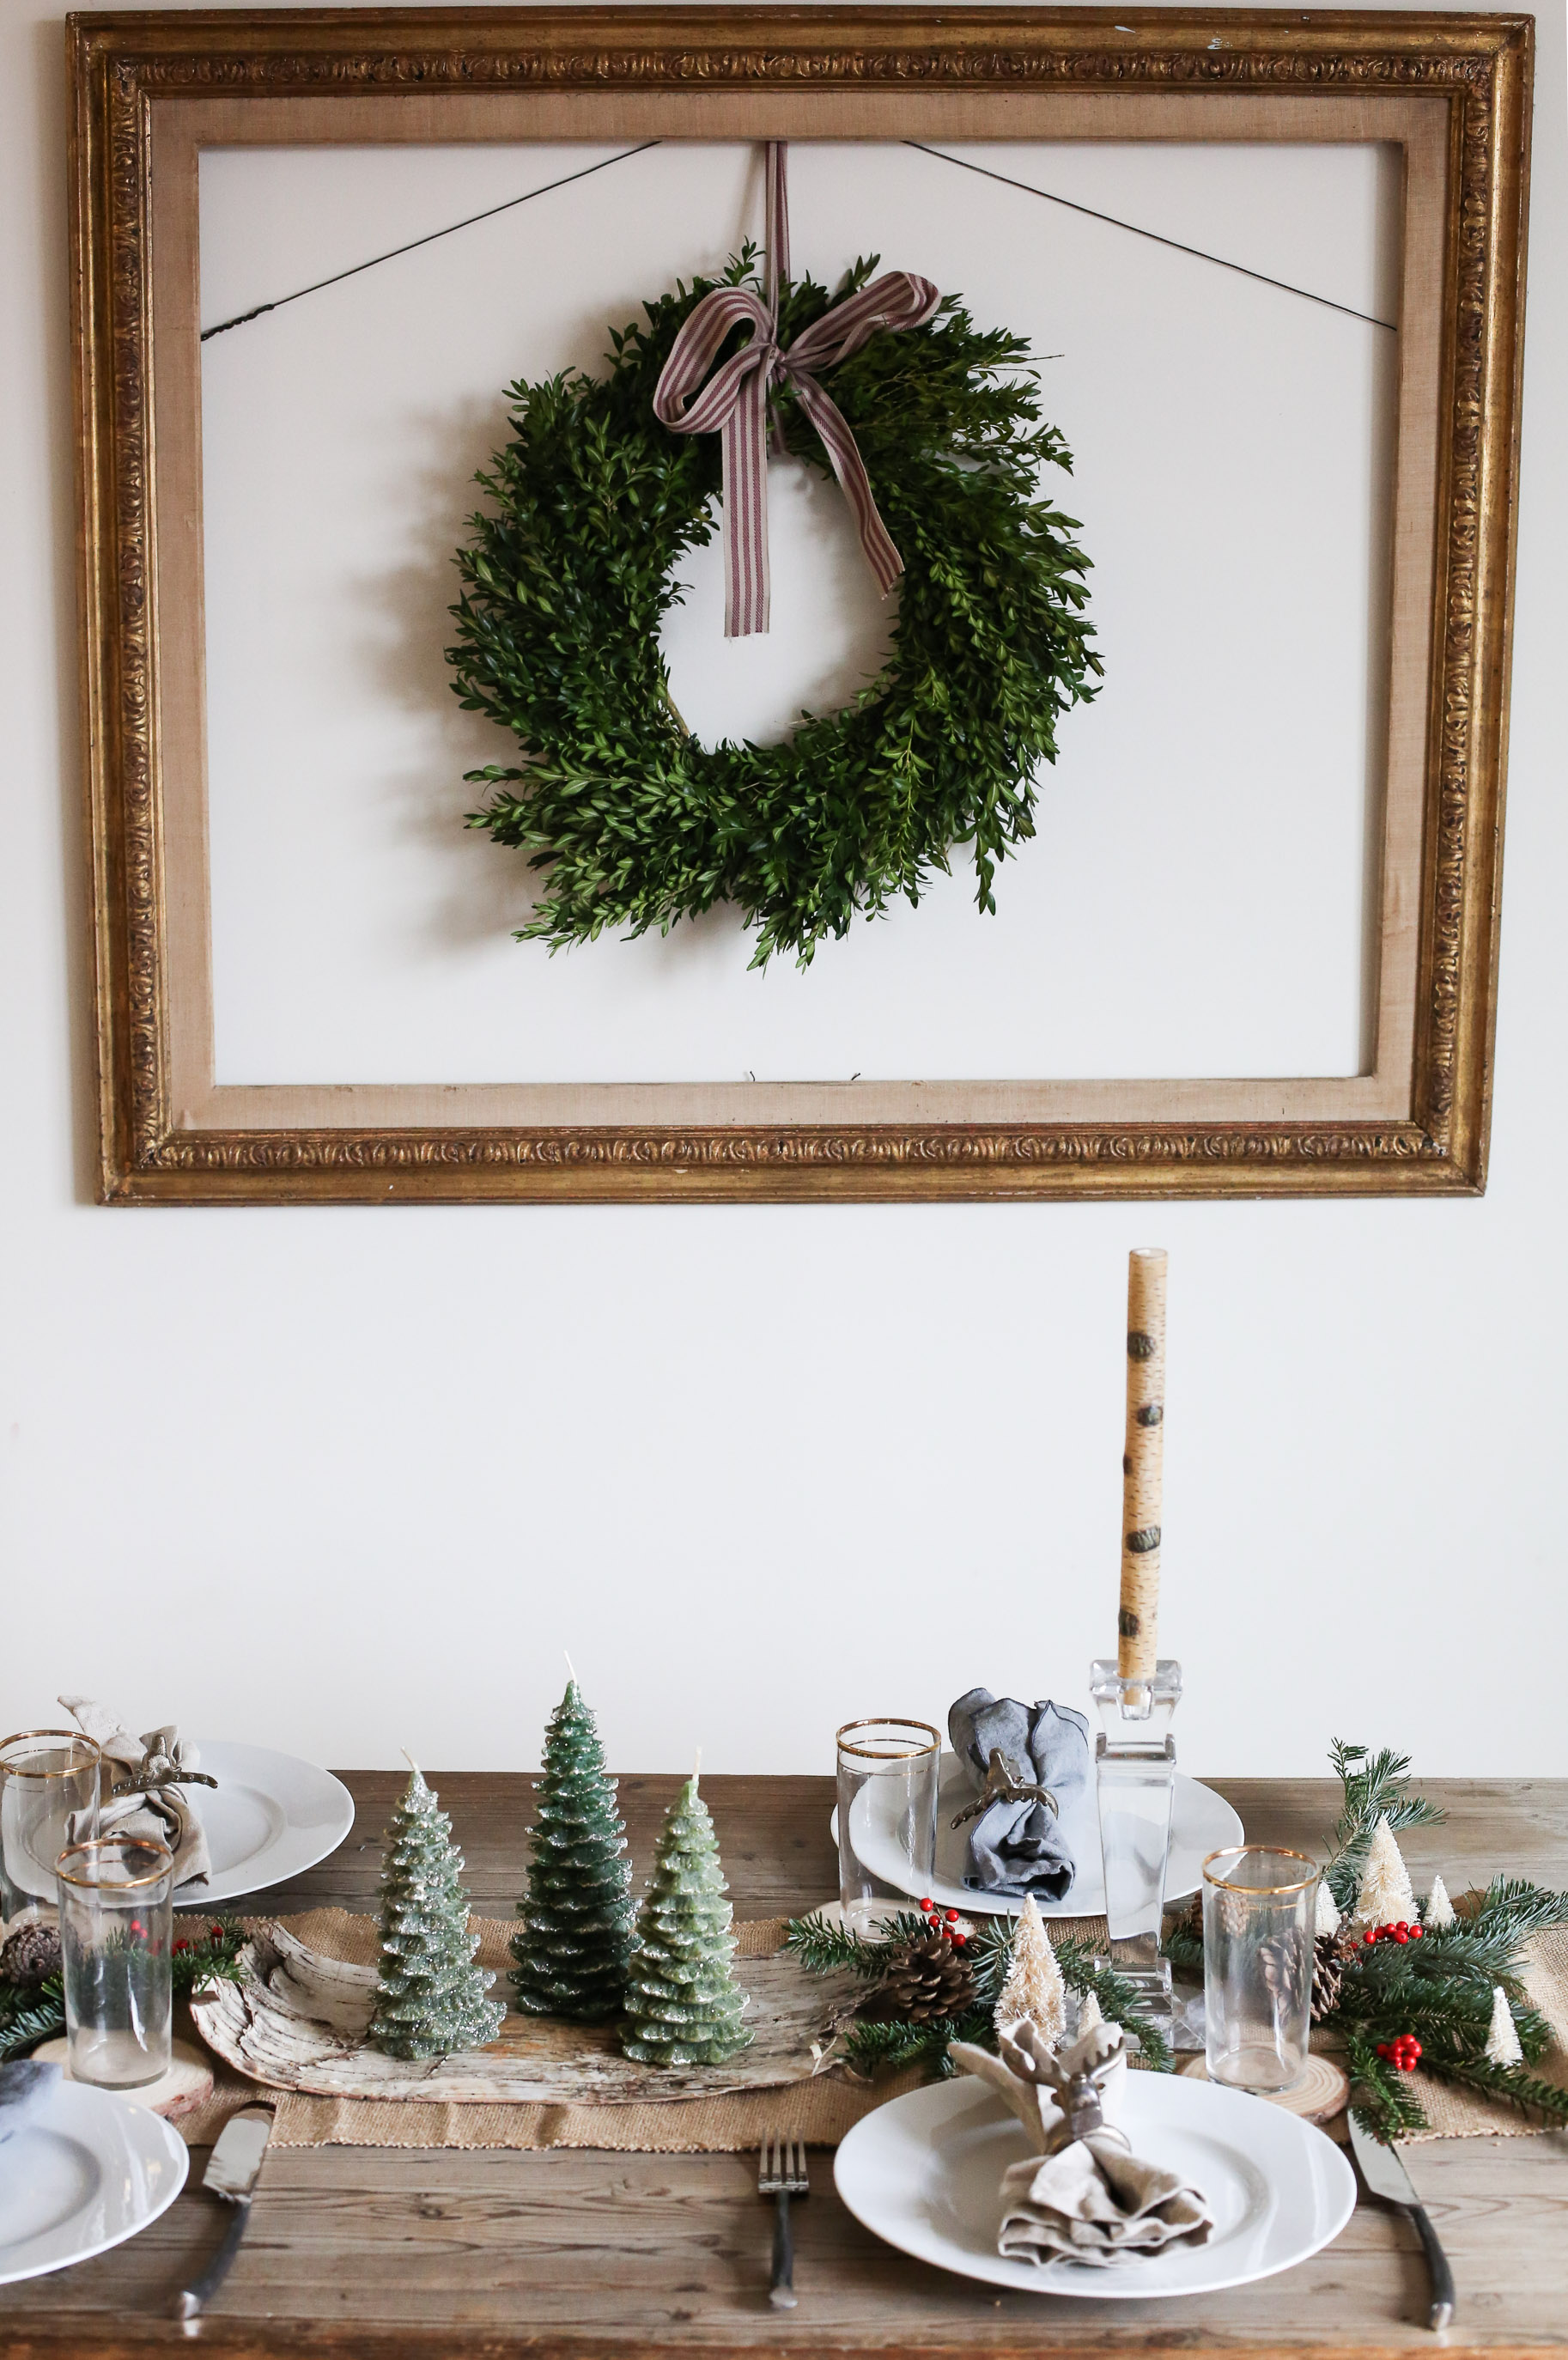 How-to-create-a-rustic-cozy-winter-woods-tablescape-for-the-holidays2.jpg